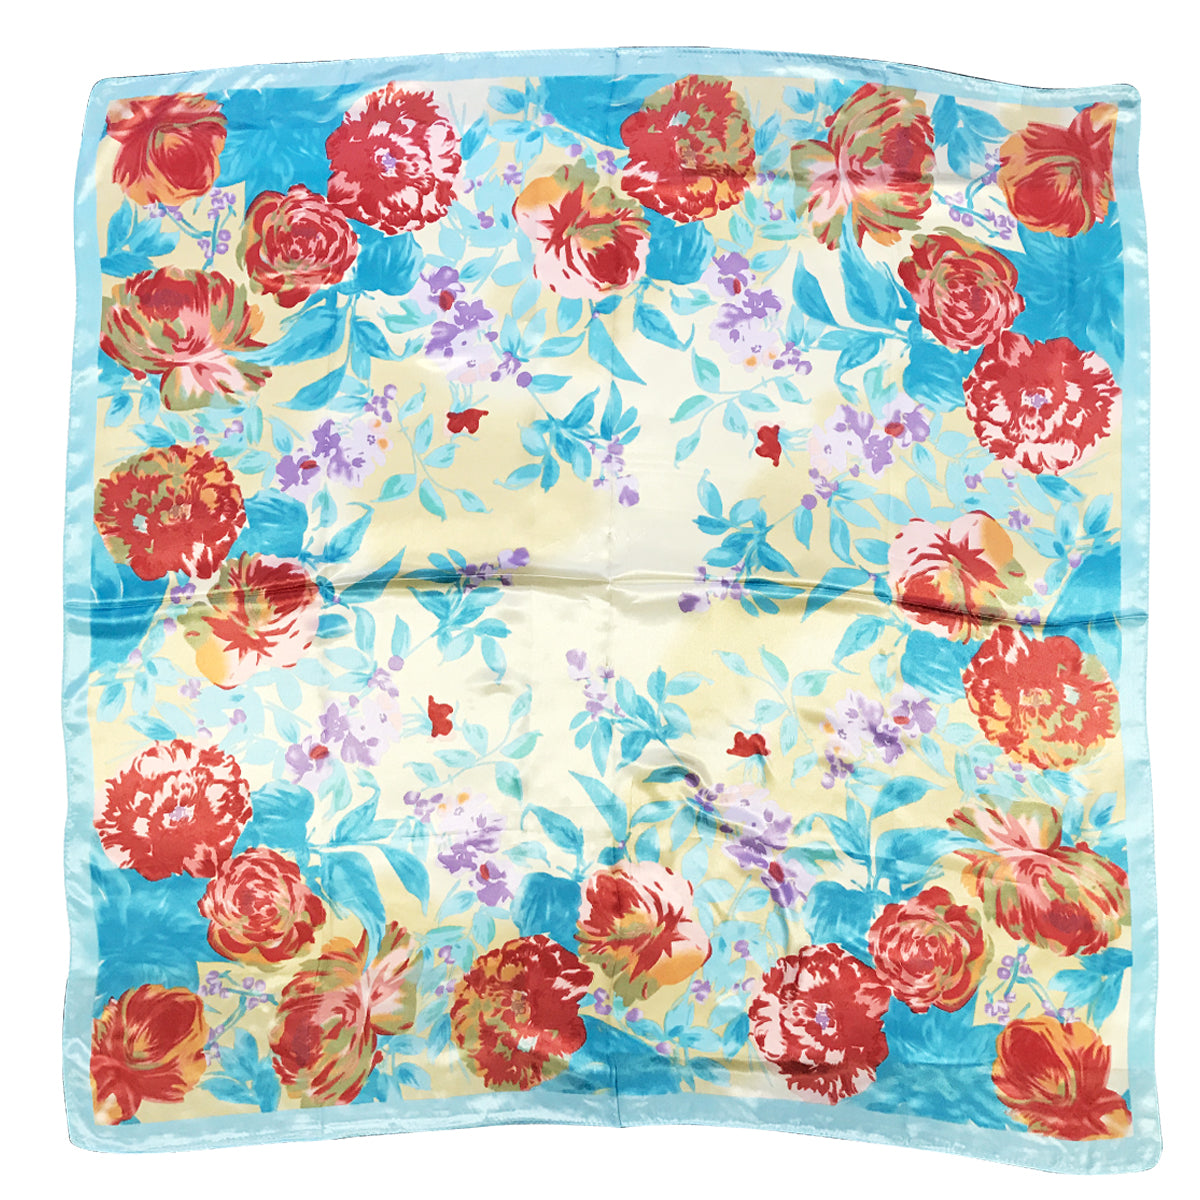 Wrapables Silk Satin Floral Neckerchief 35 x 35 Inch Square Scarf